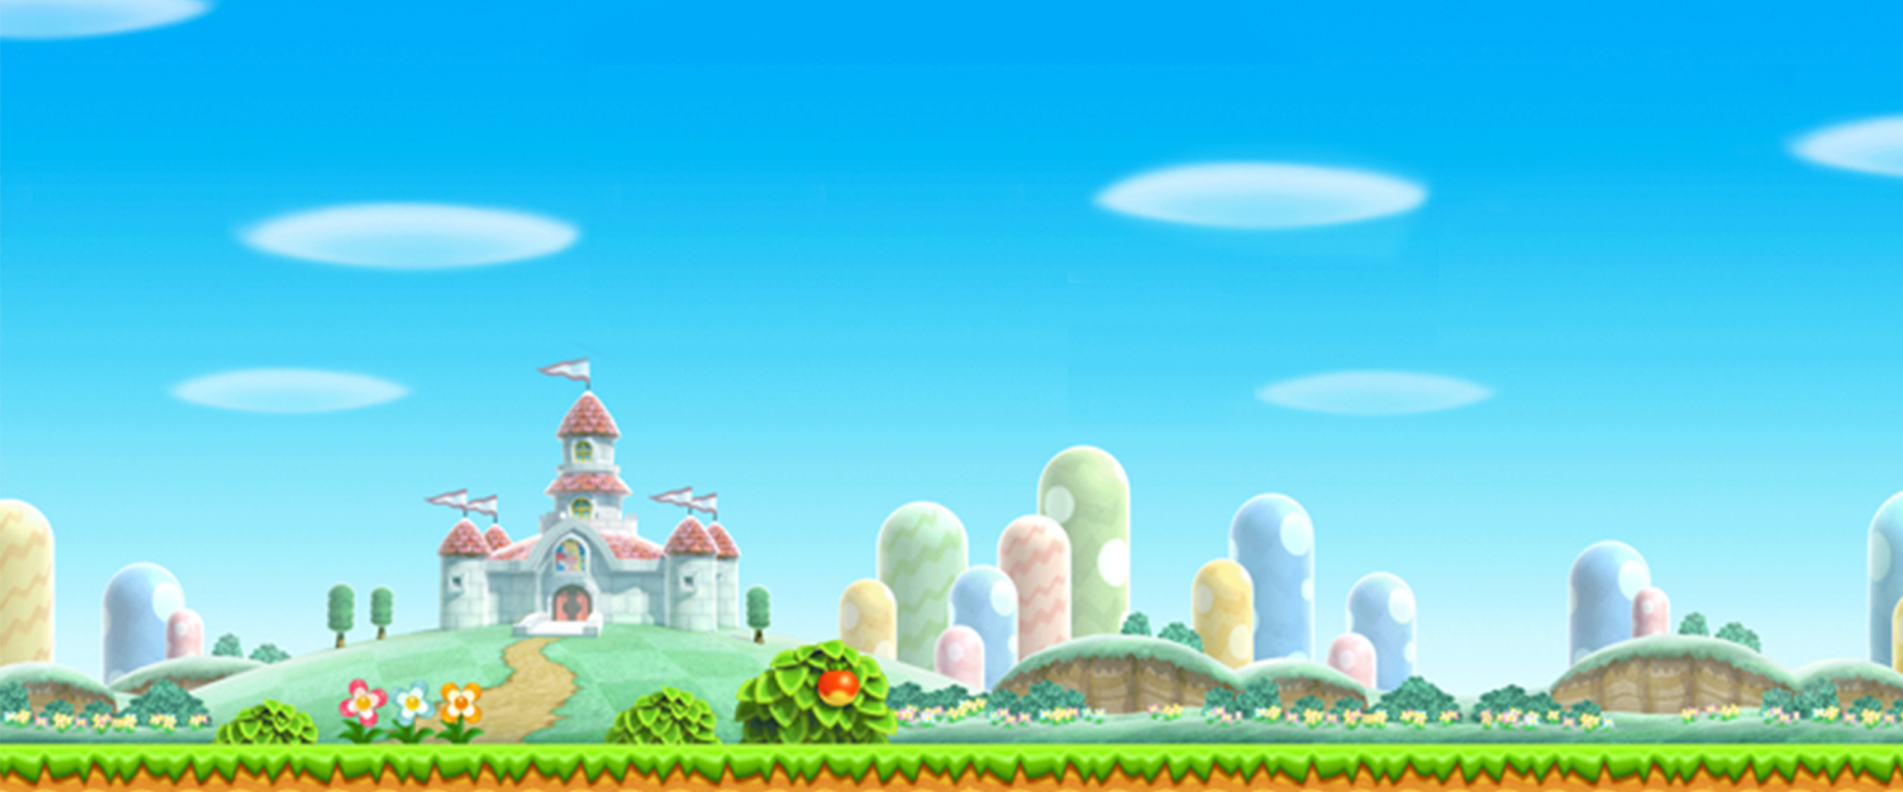 New Super Mario Bros Wii Full Hd Wallpaper And Background Image